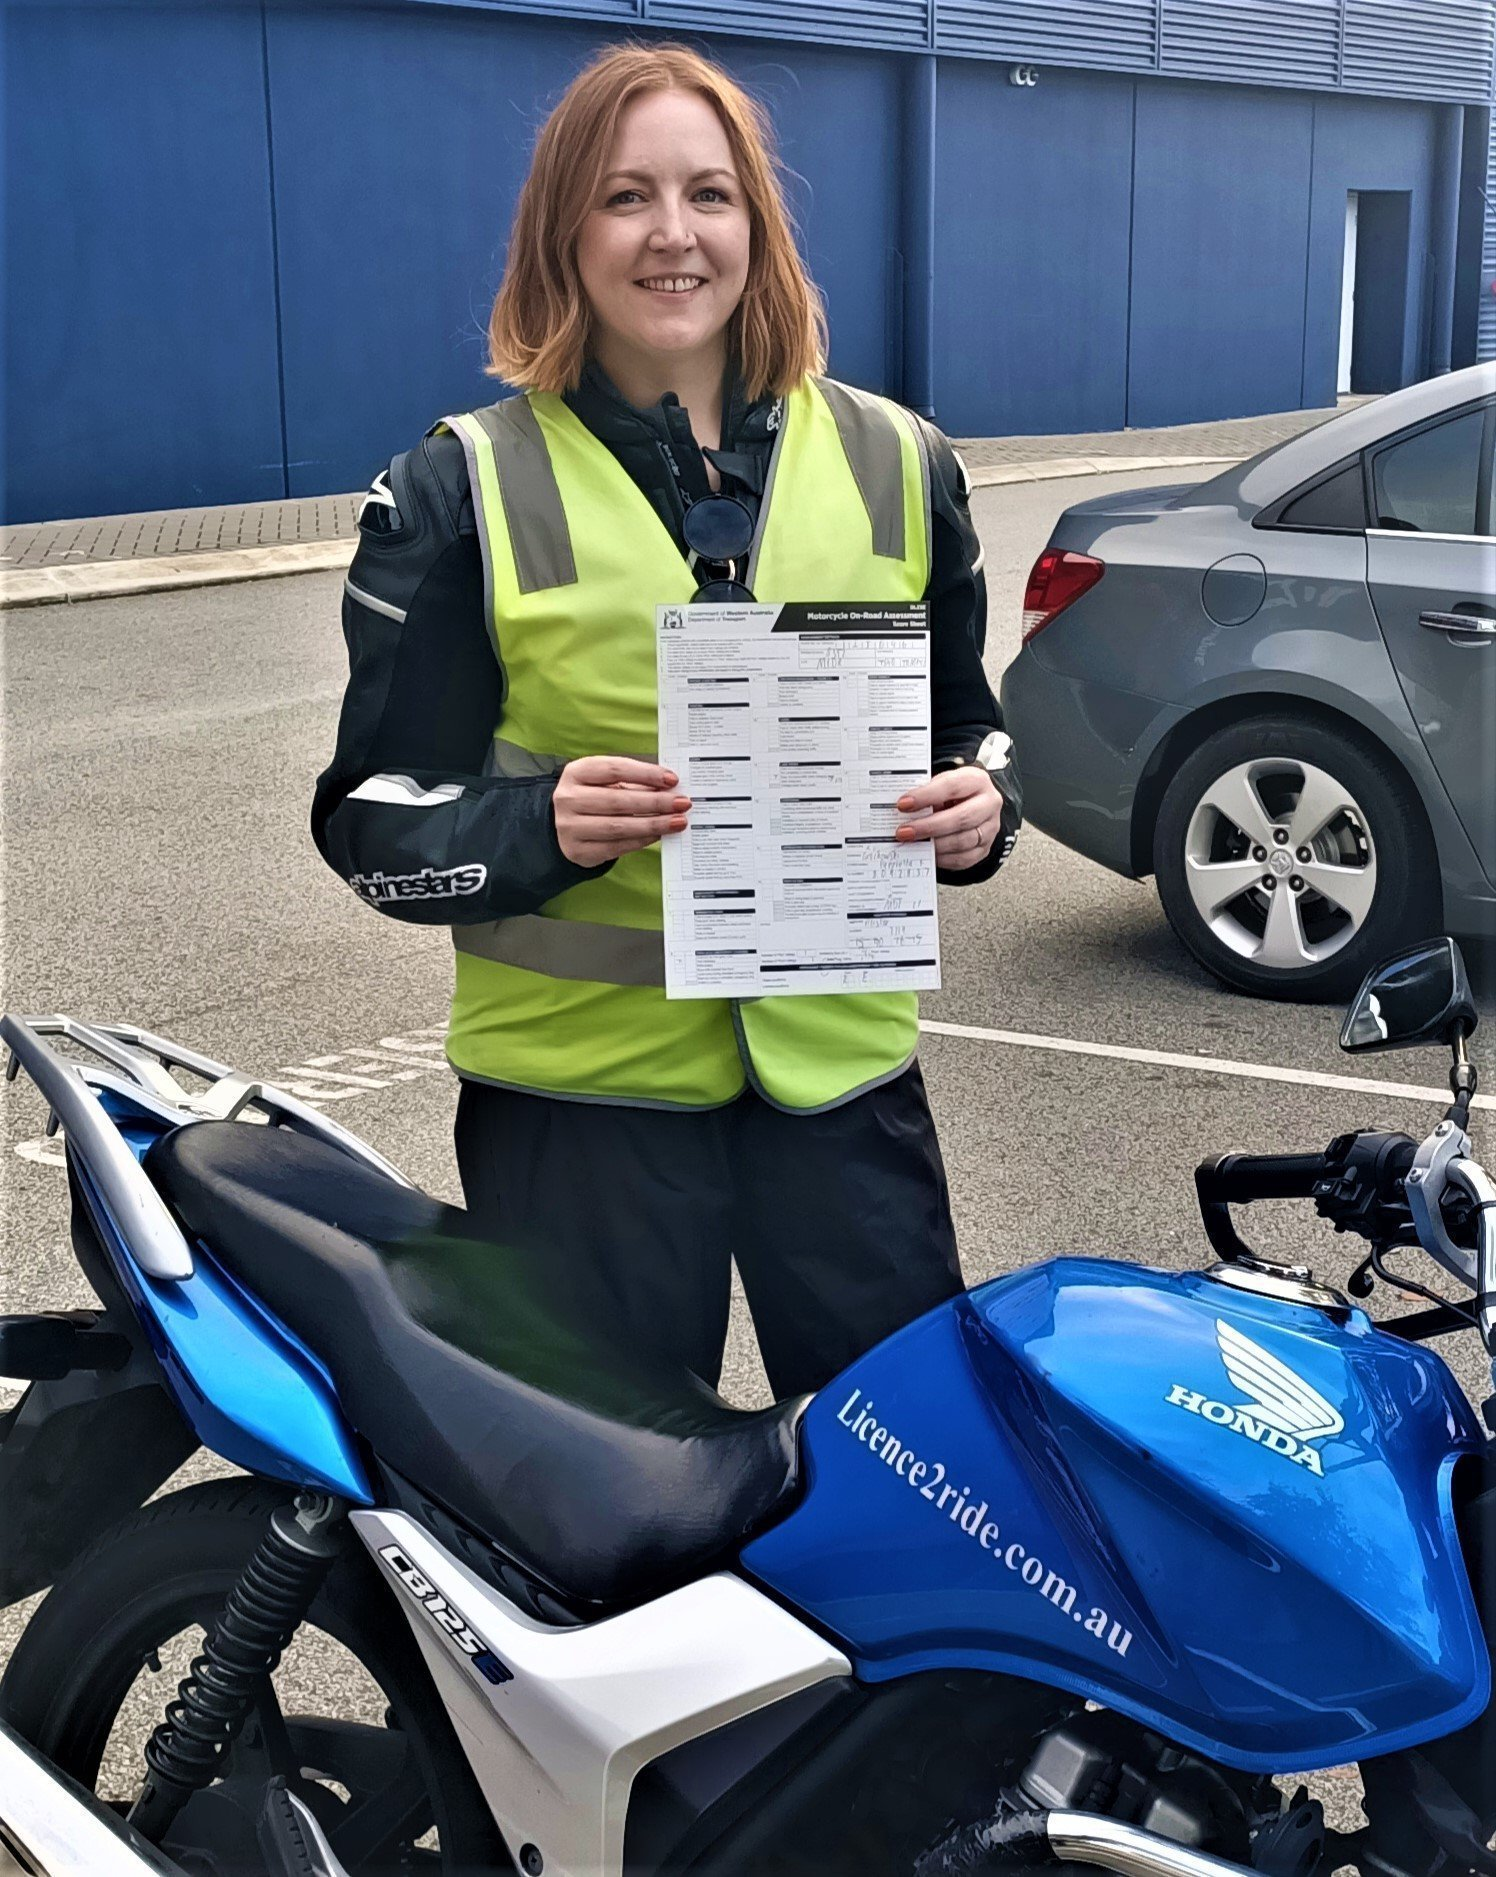 Female Motorcycle Instructor Perth